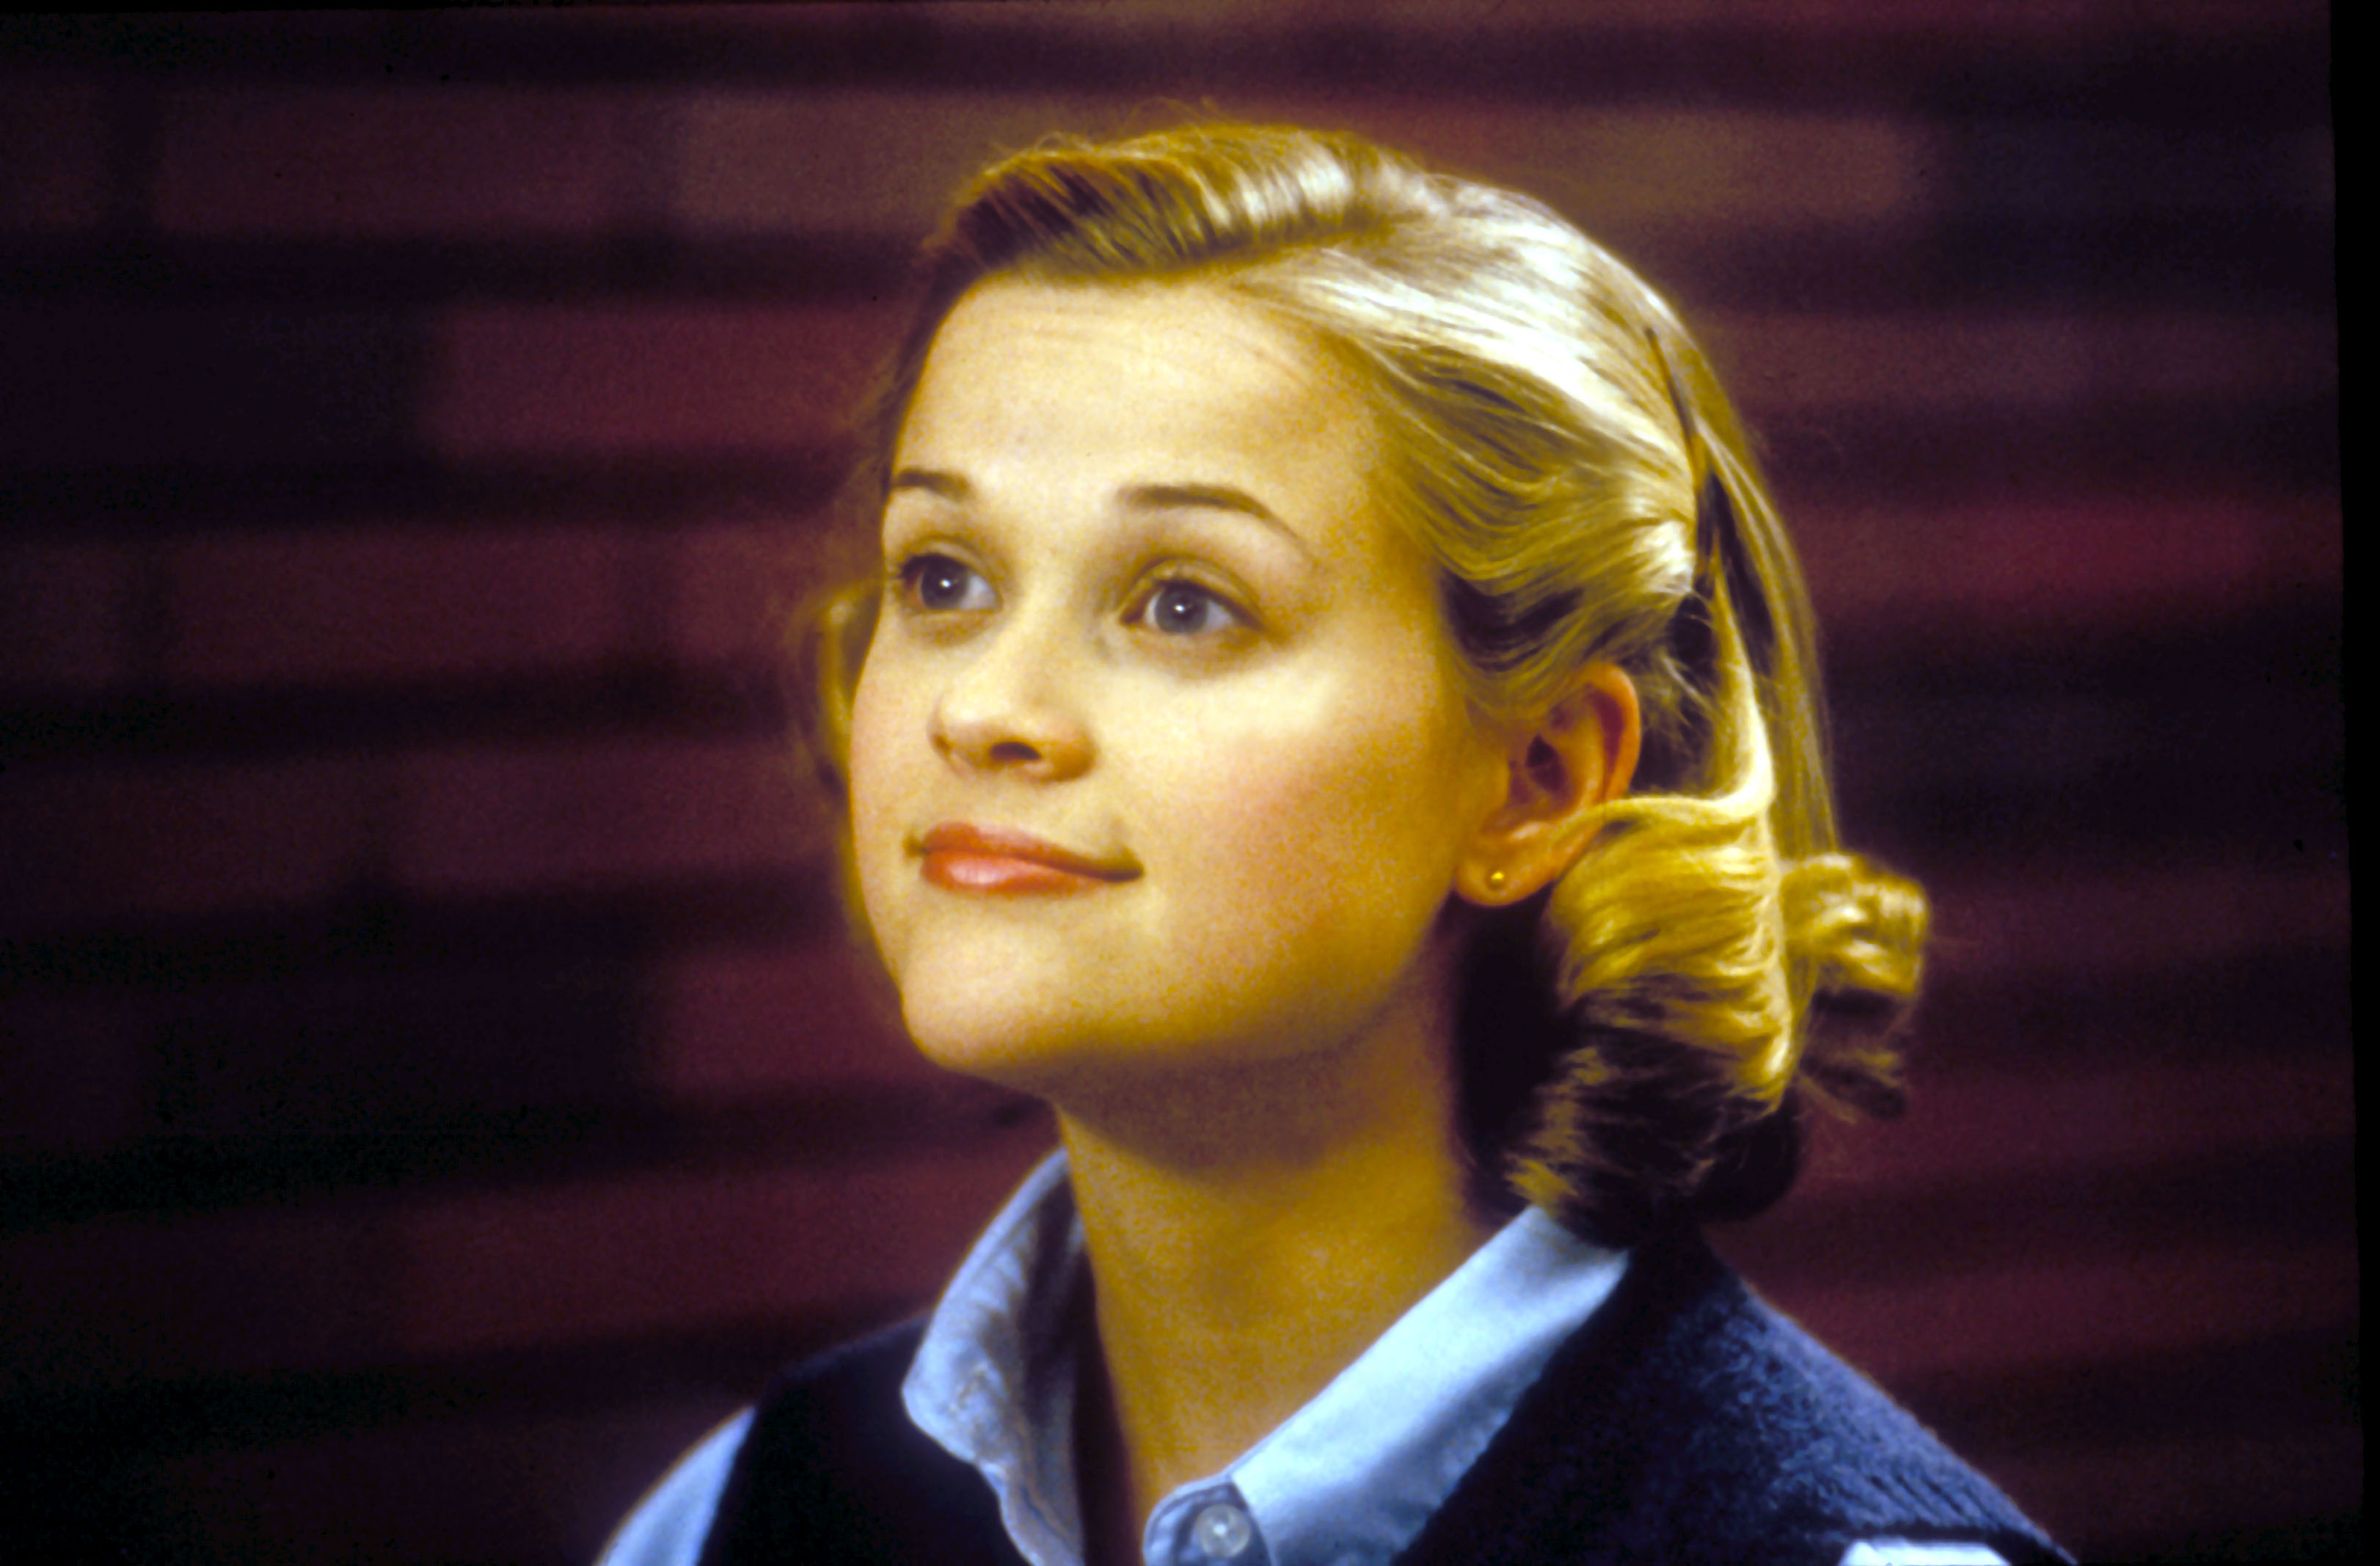 ELECTION (1999) REESE WITHERSPOON